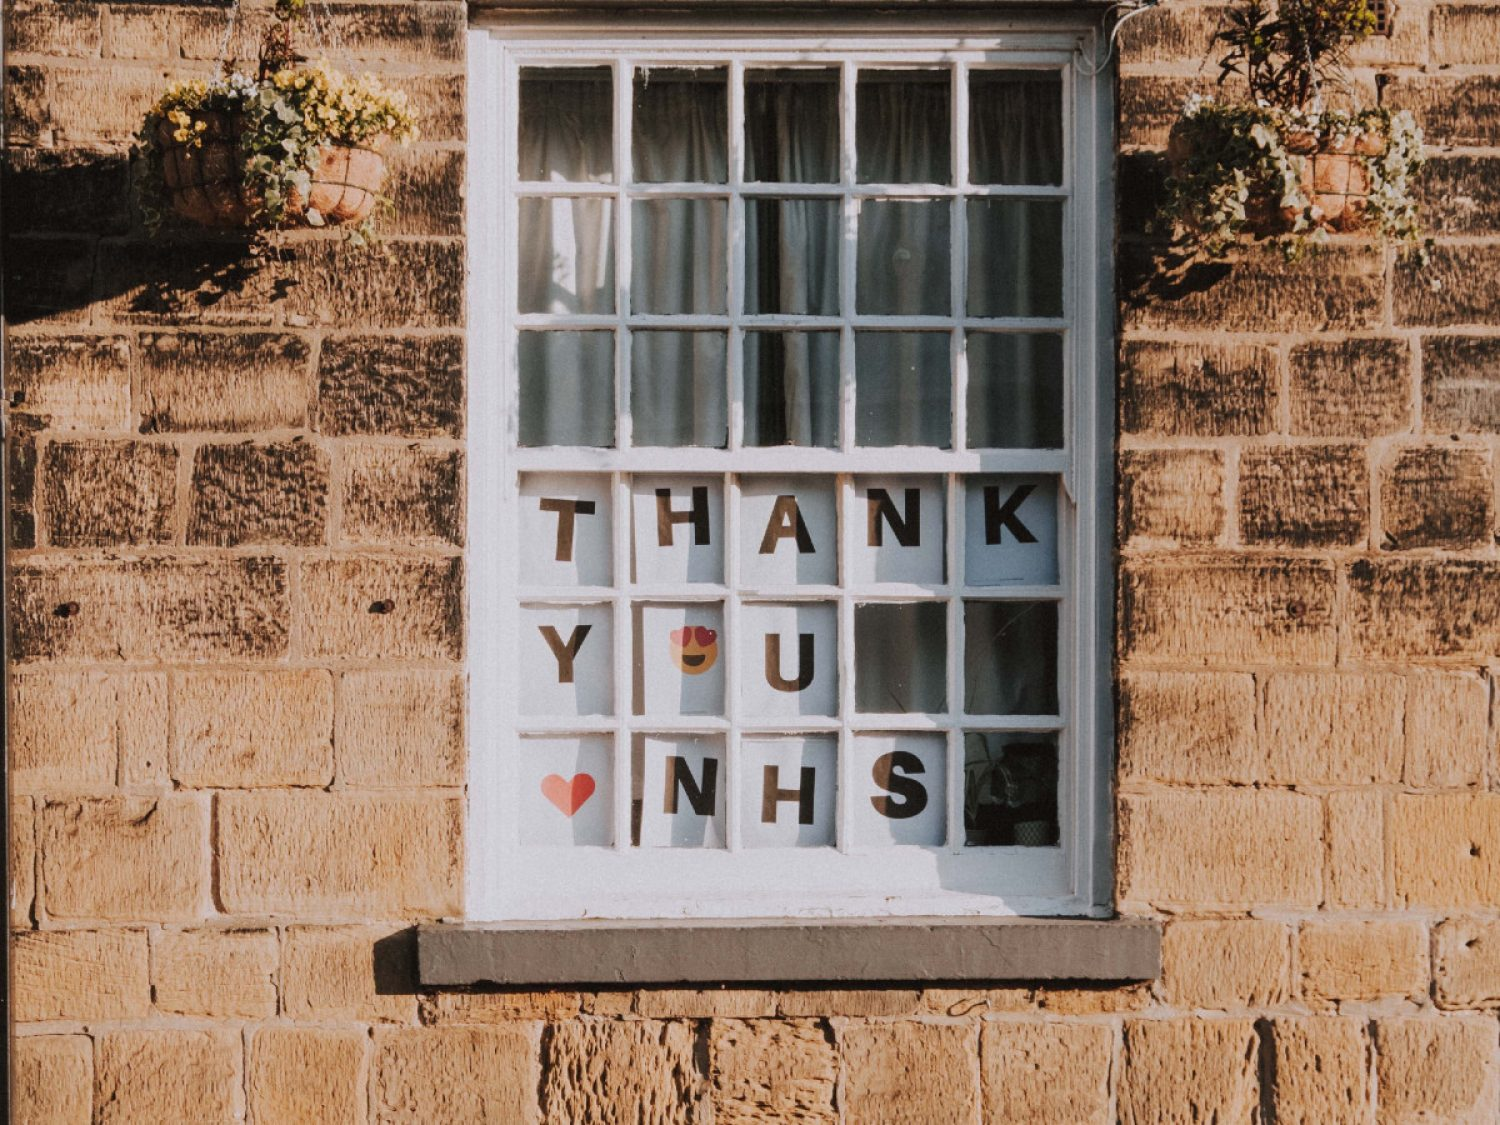 Thank you NHS 2